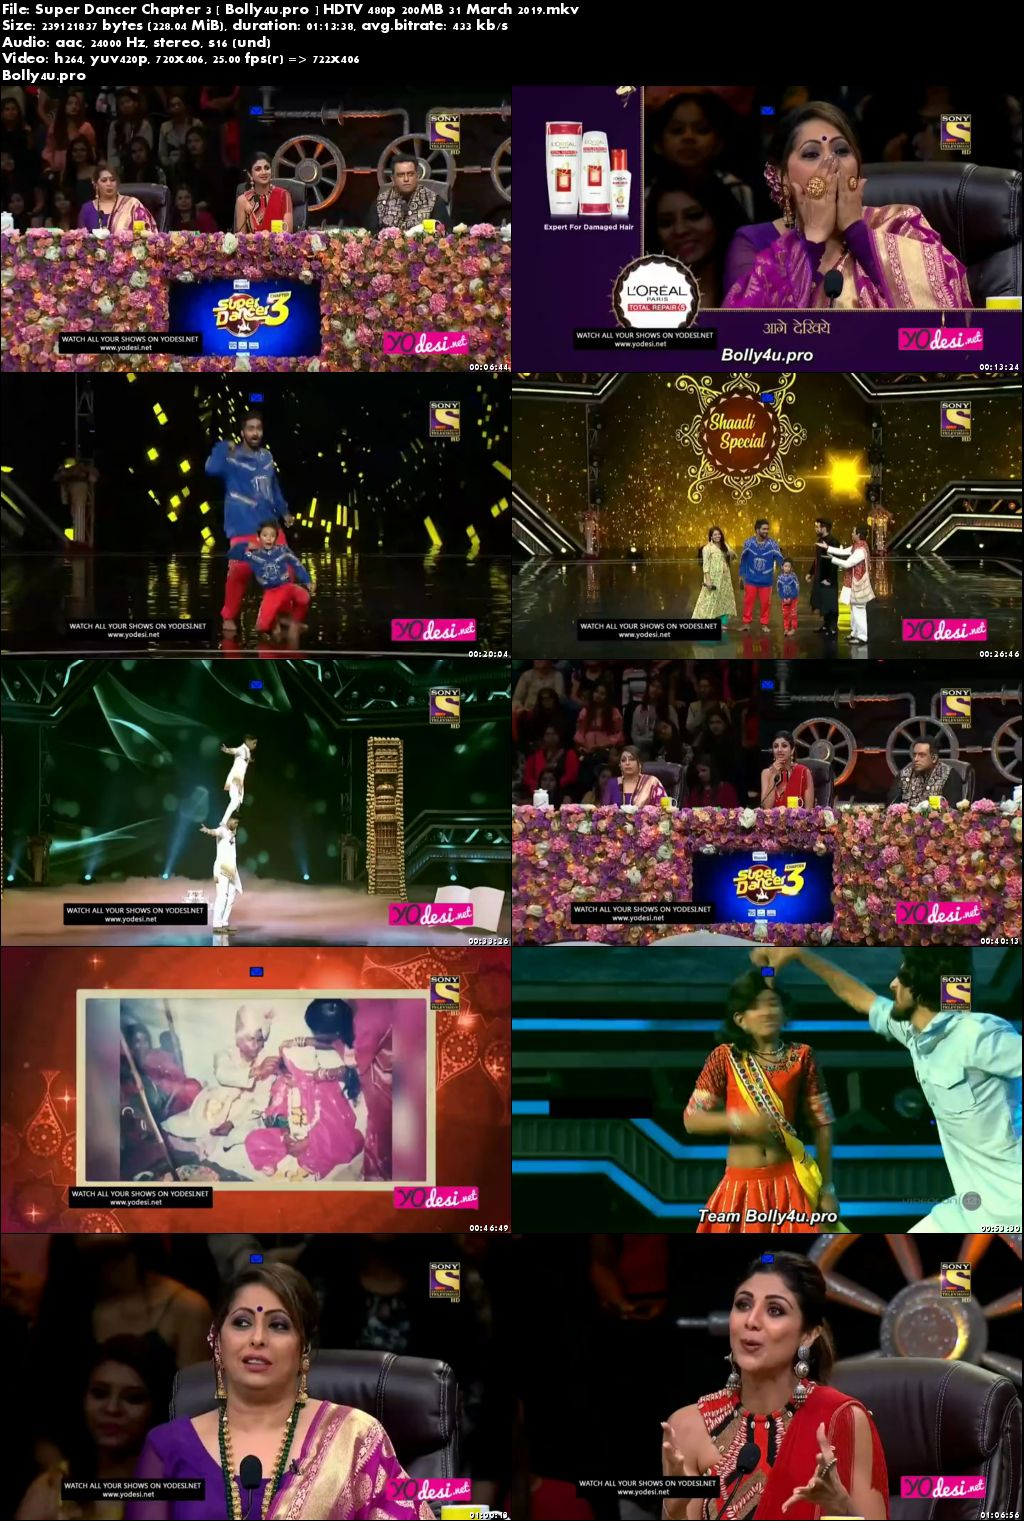 Super Dancer Chapter 3 HDTV 480p 200MB 31 March 2019 Download